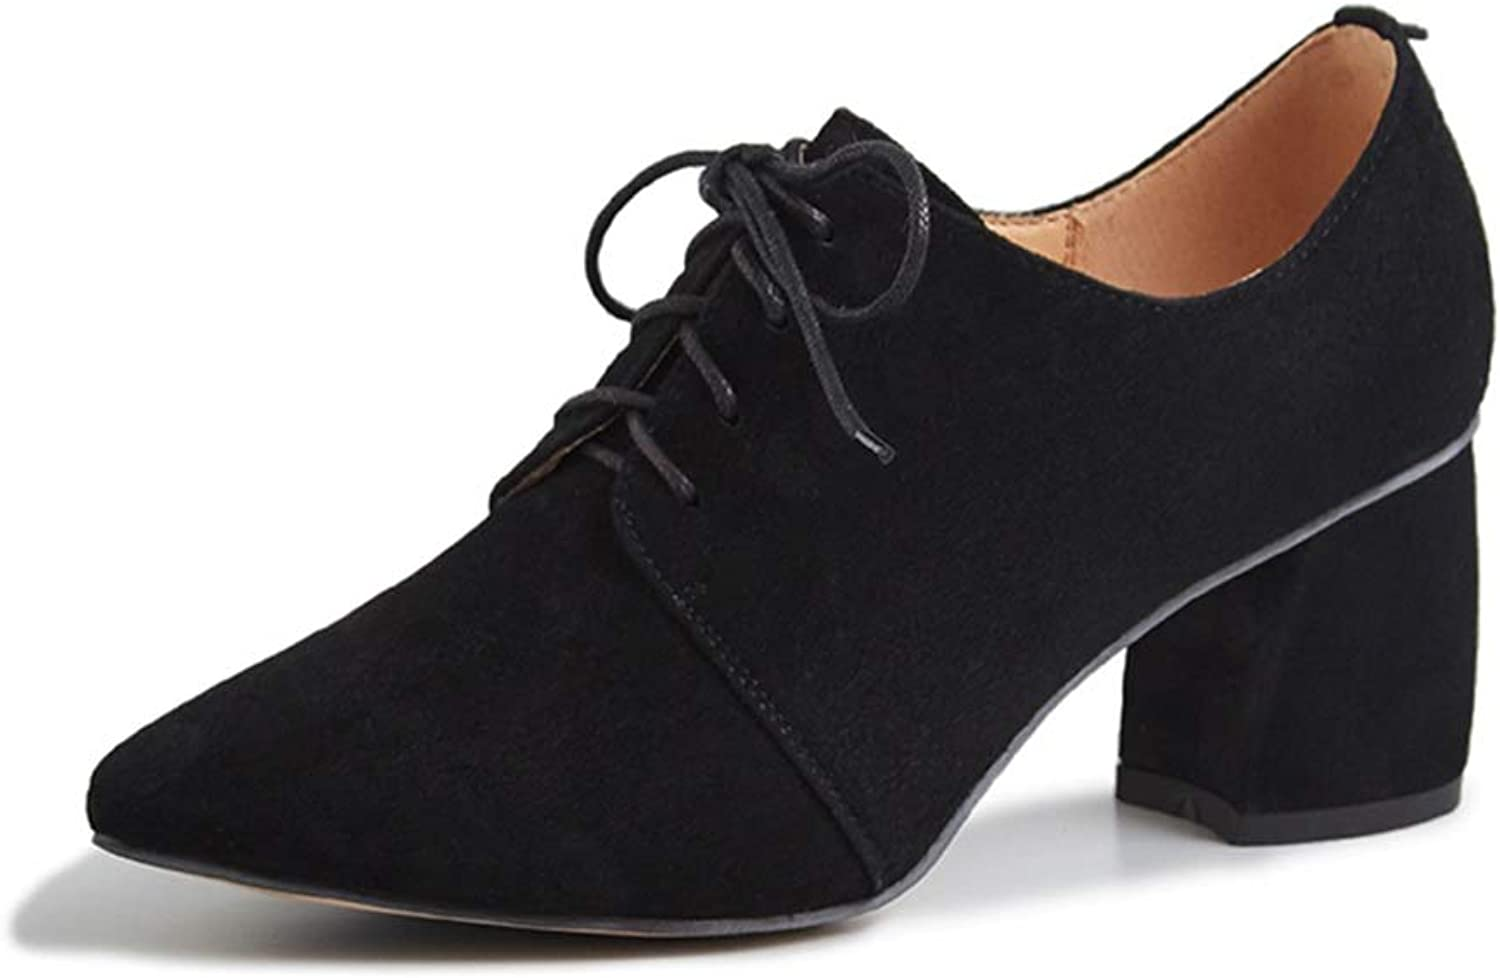 Deep Mouth Single shoes Female Thick with Leather Pointed Nude color High Heels Ladies Small shoes British Casual Women's shoes 2019 Spring Black, Size   35